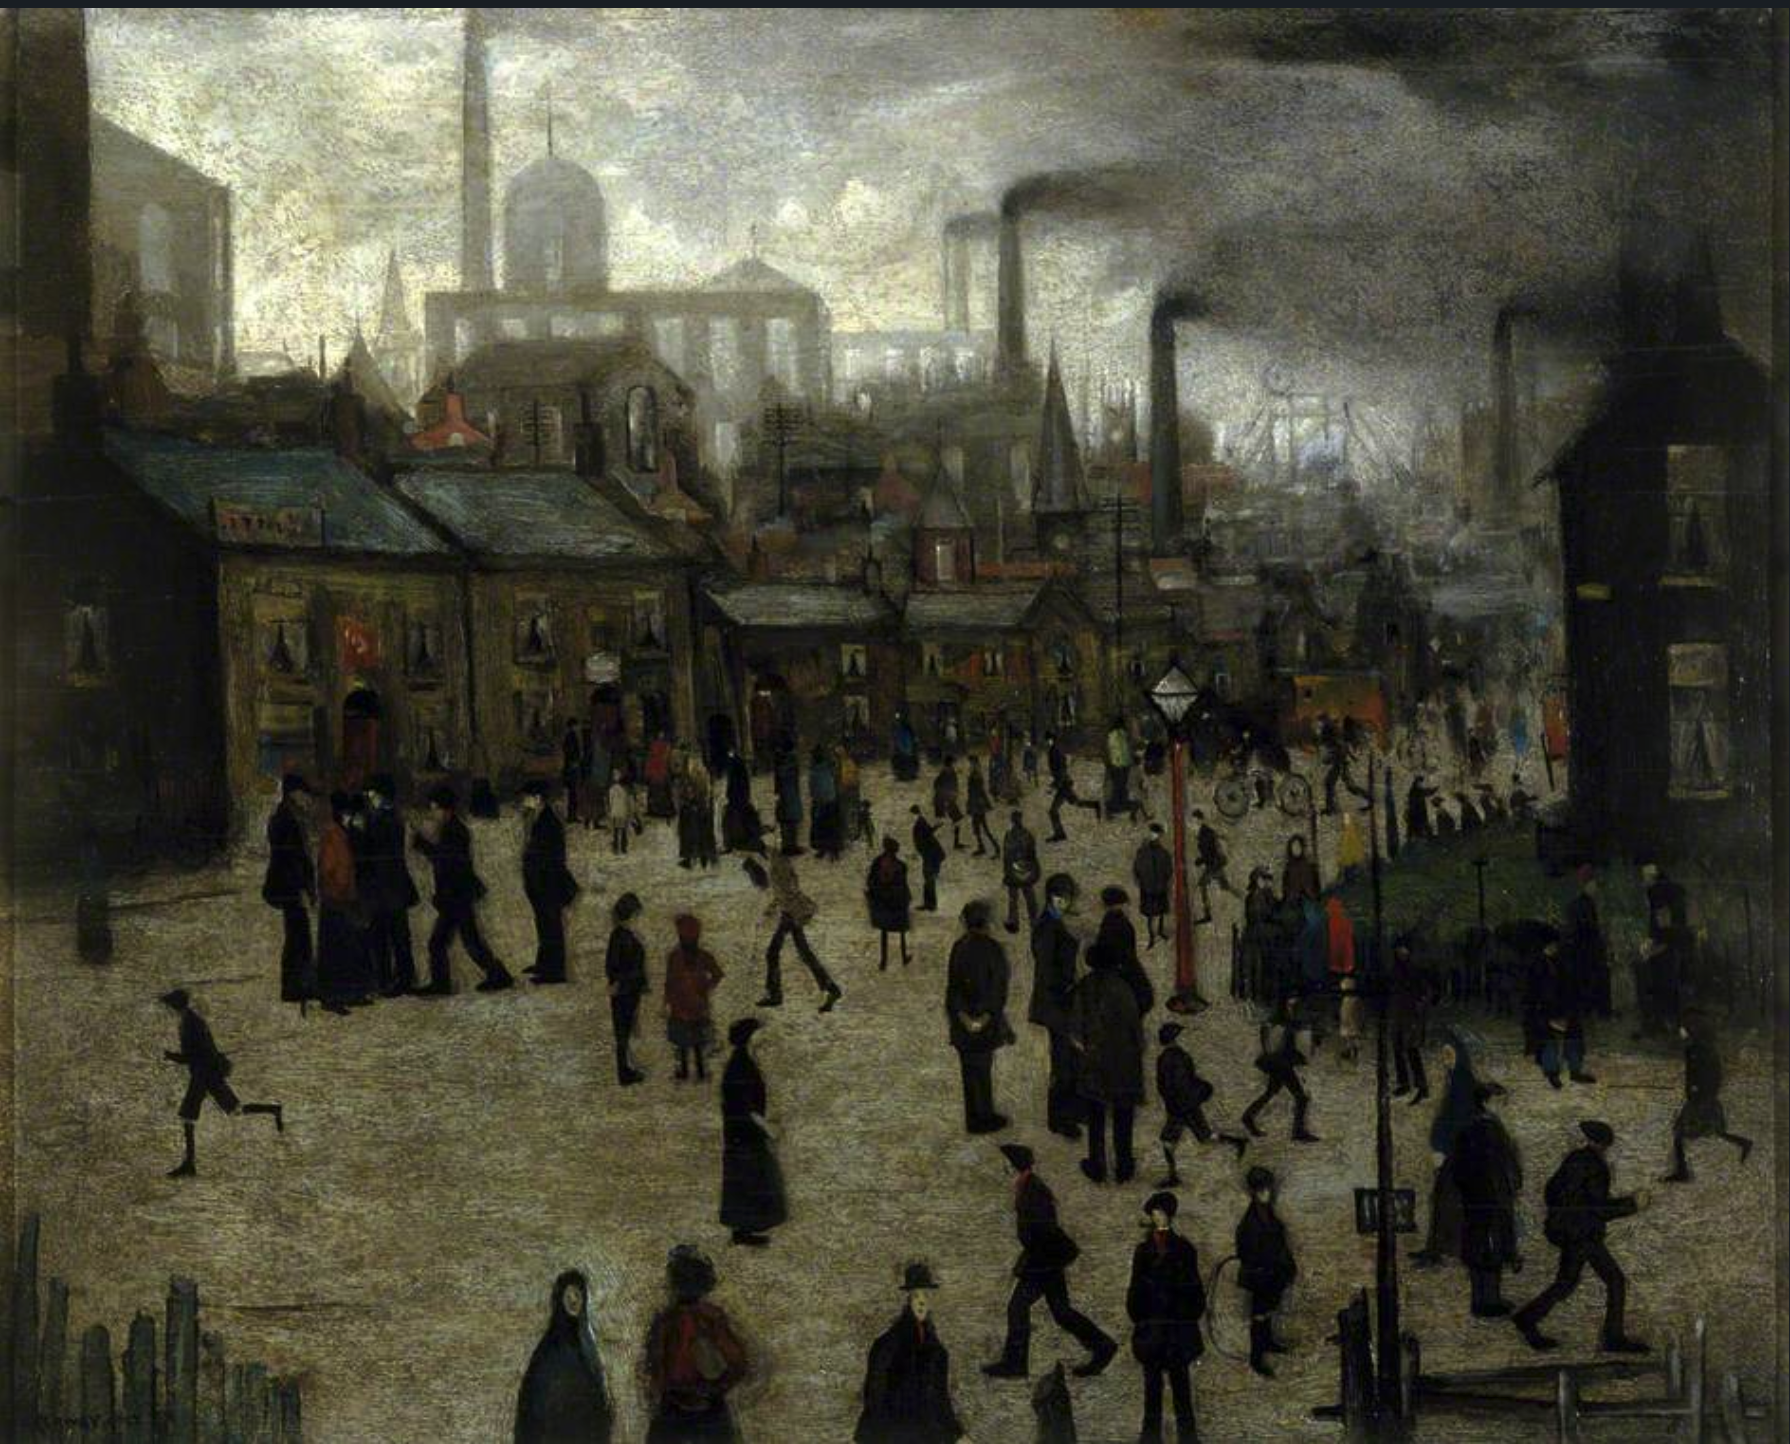 A Manufacturing Town (1922) by Laurence Stephen Lowry (1887 - 1976), English artist.